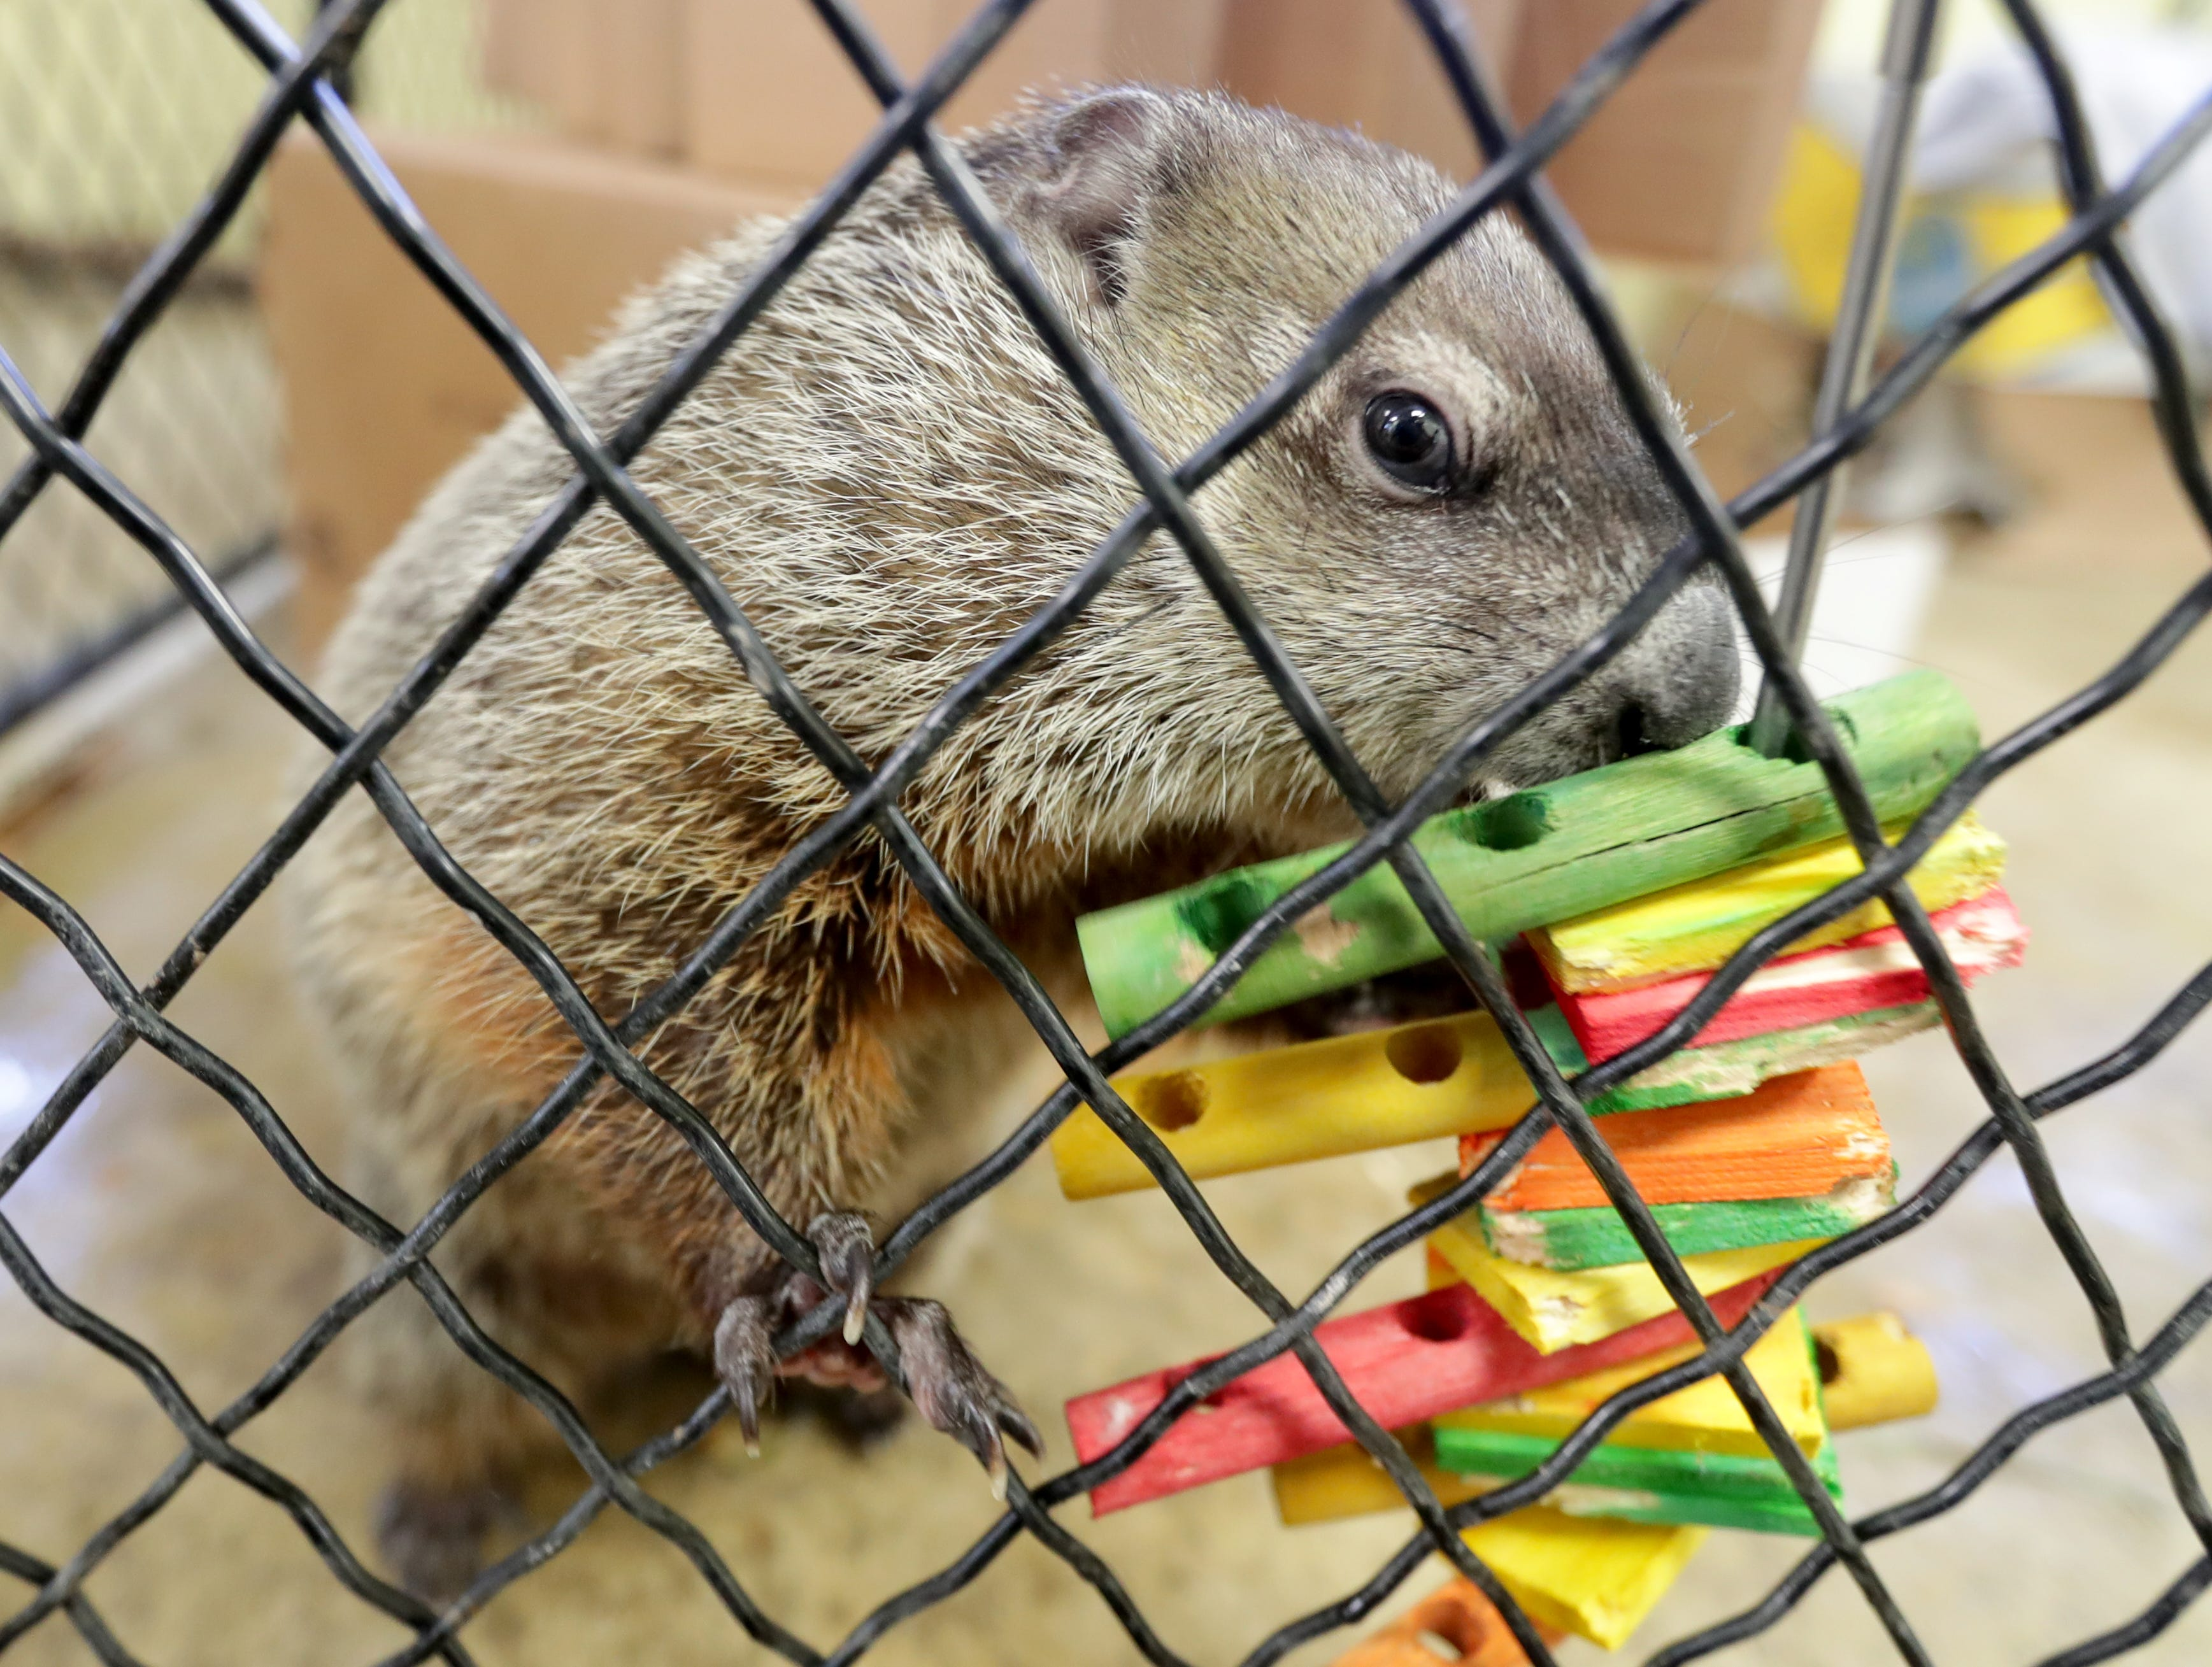 Gordy the groundhog explores some wooden toys.